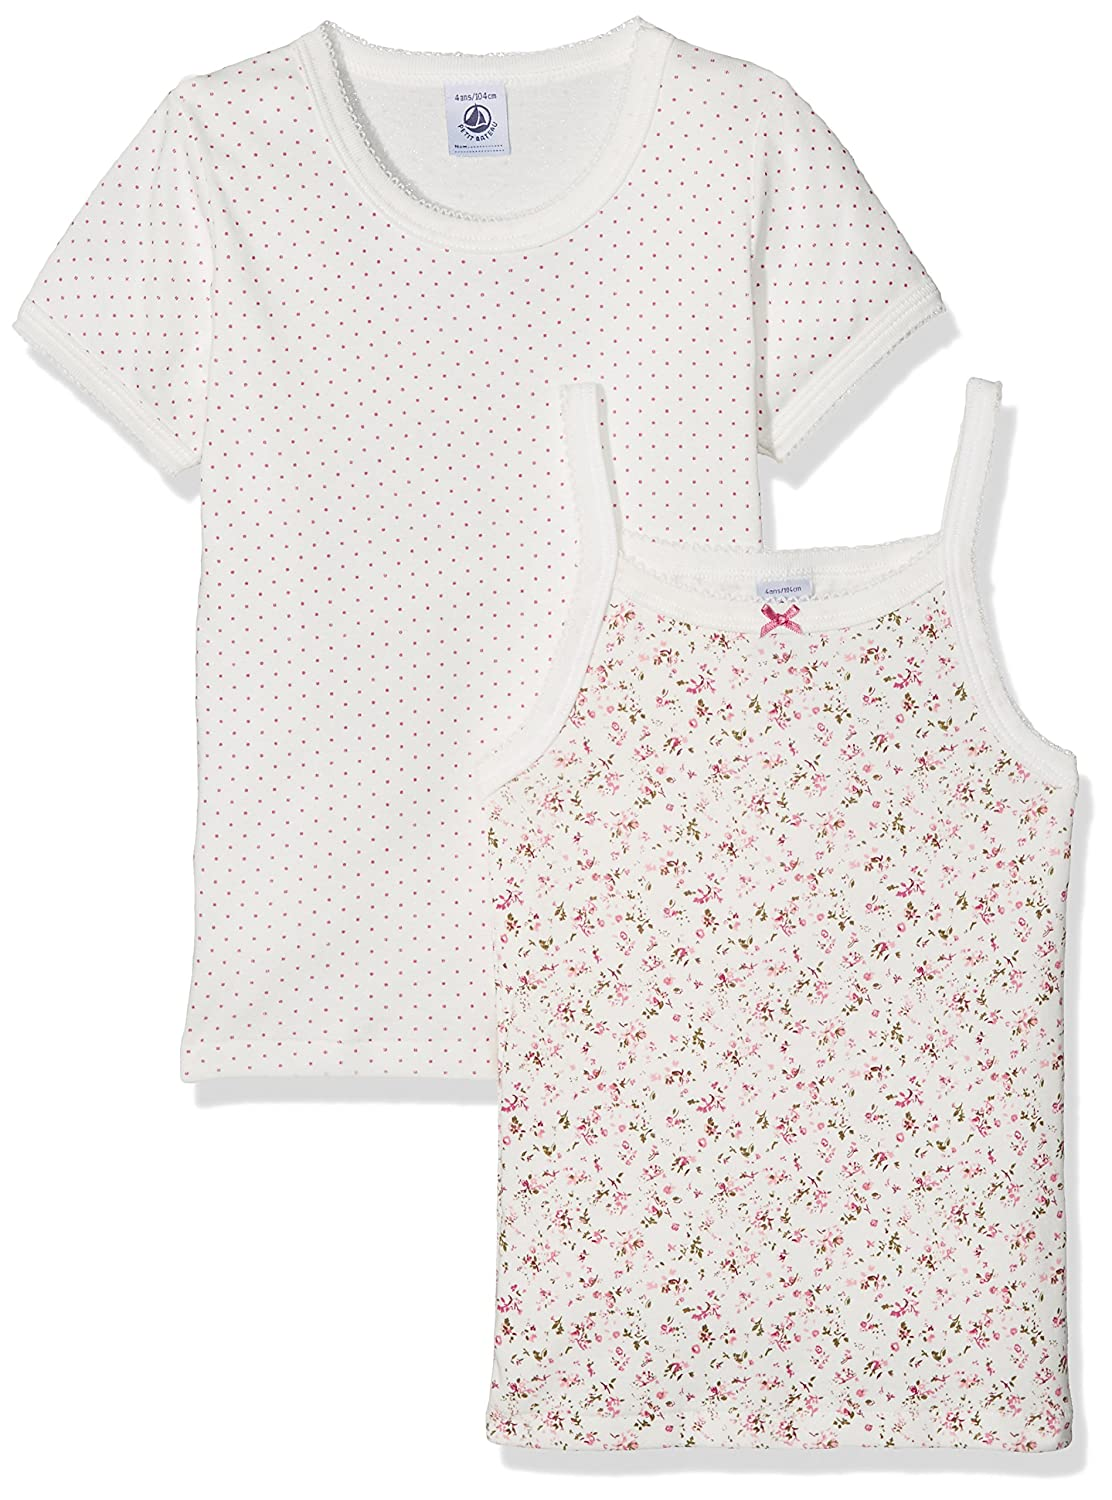 Petit Bateau Girls S/S and Sleevless 2 PK. Undershirts Sizes 2-12 Style 25765